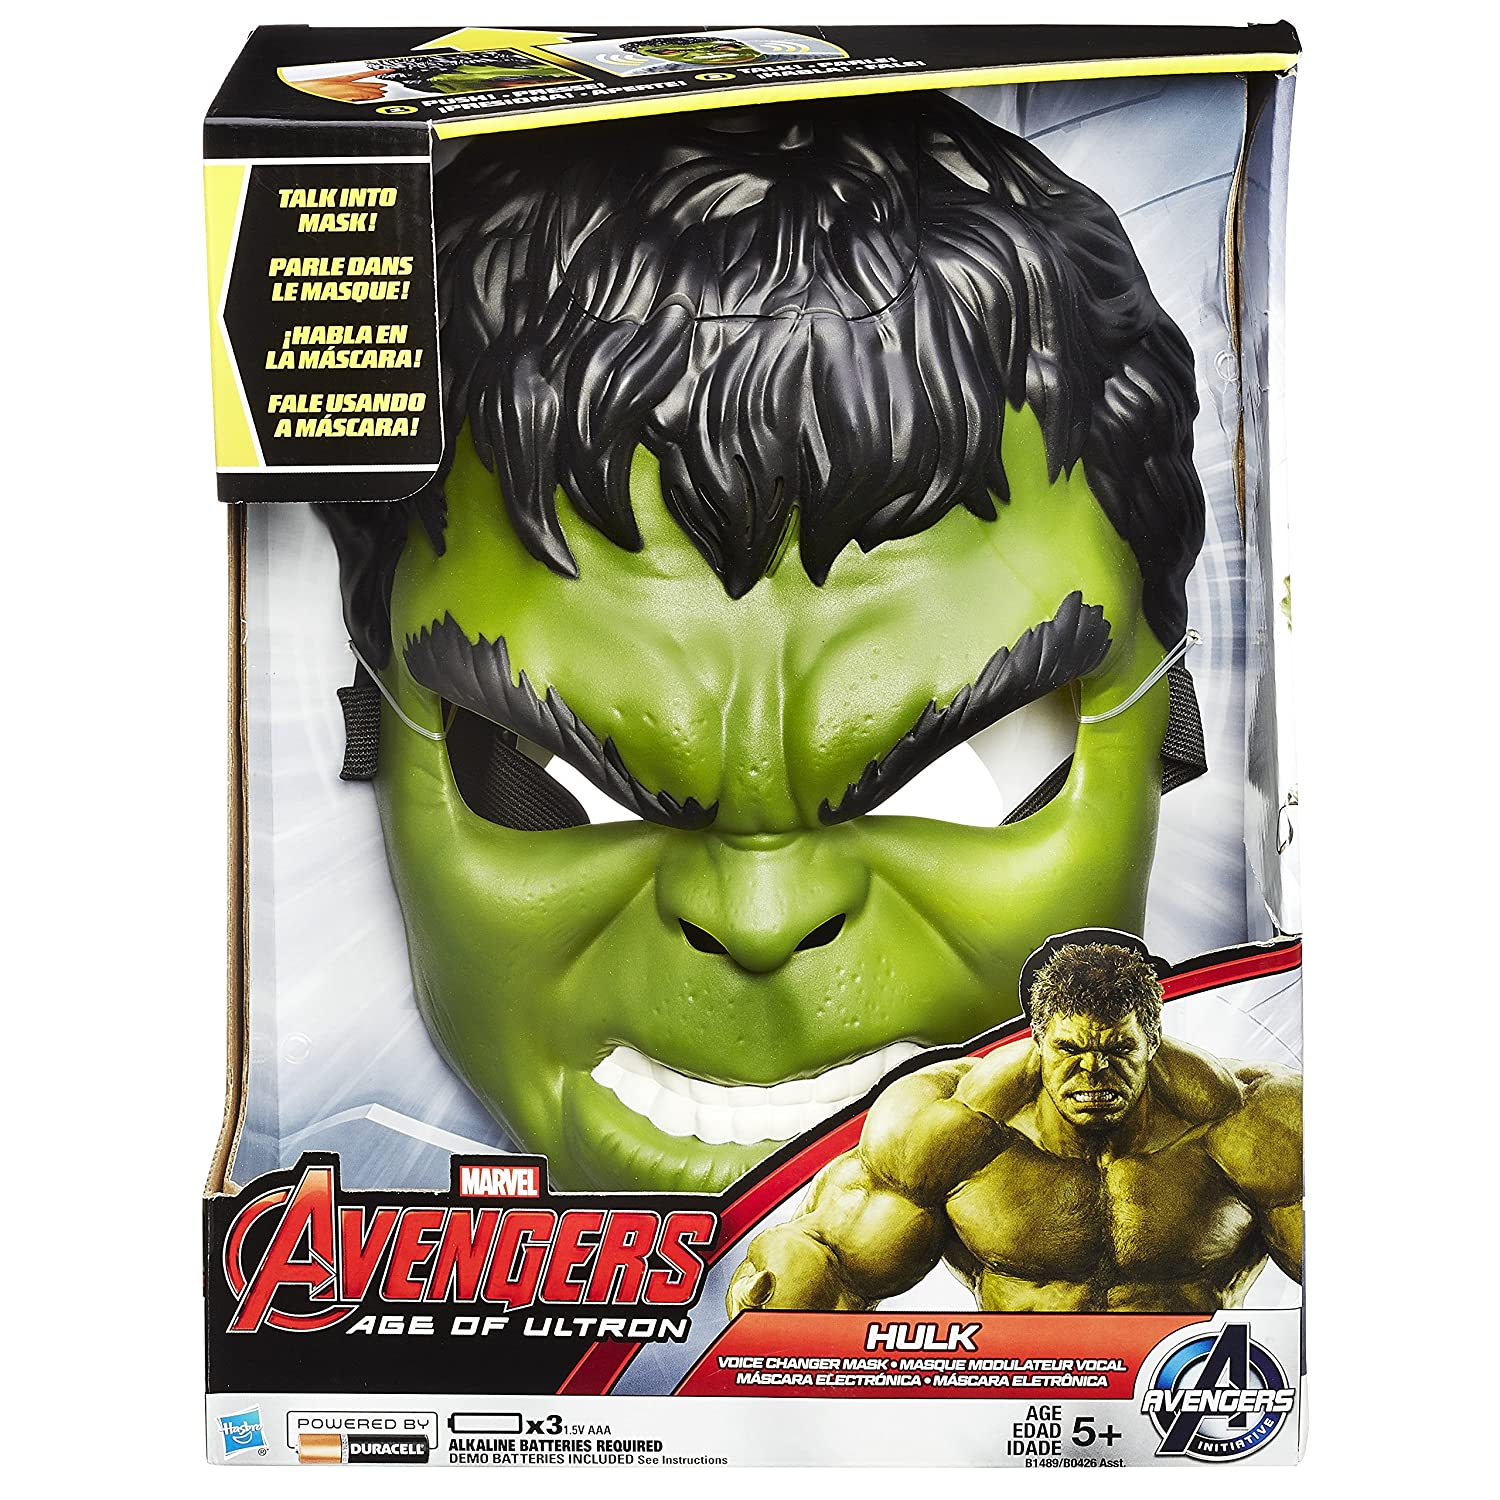 Amazon.com: Marvel Avengers Age of Ultron Hulk Voice Changer Mask: Toys & Games